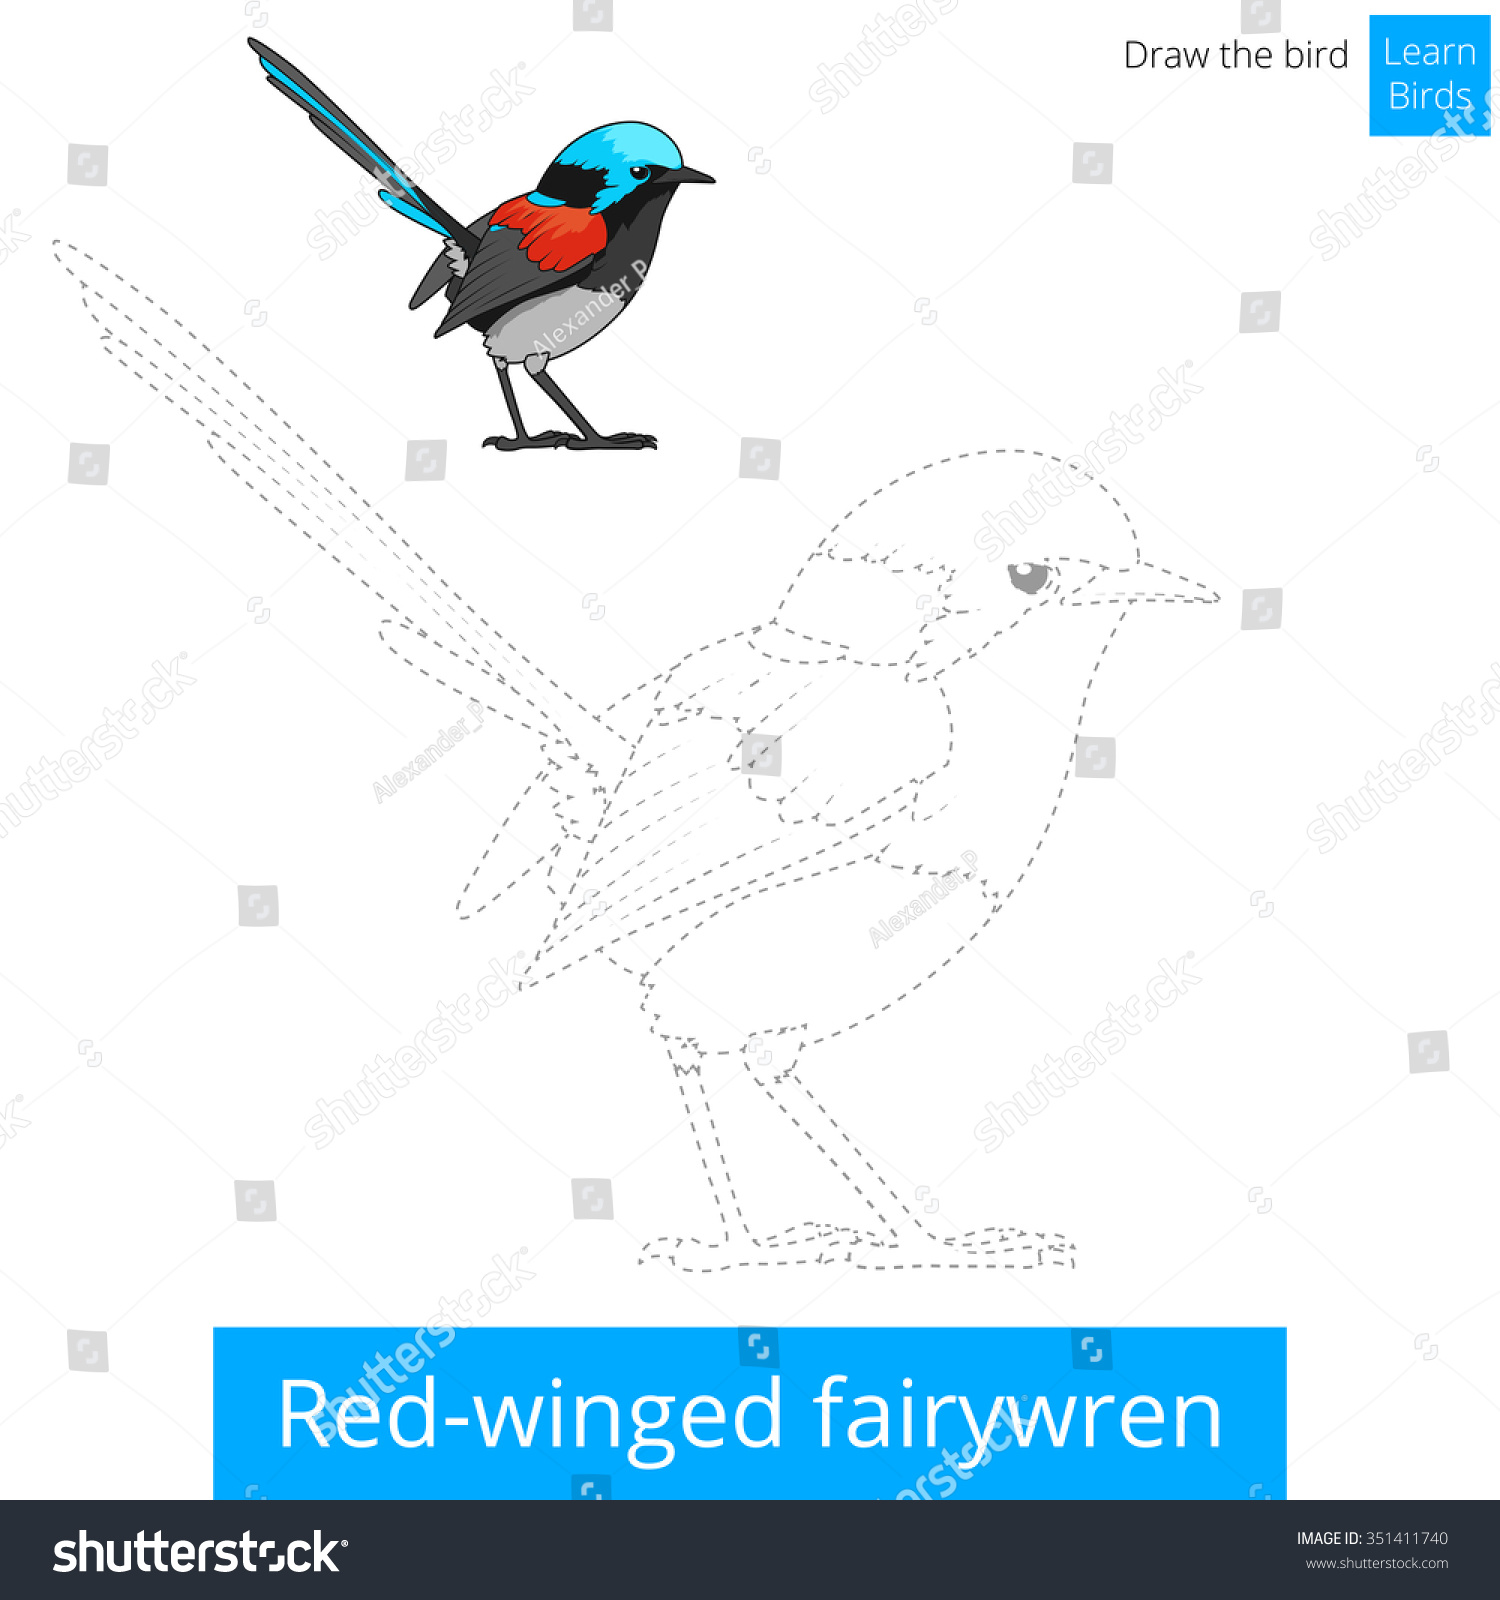 Red Winged Fairywren Learn Birds Educational Game To Draw Raster Illustration